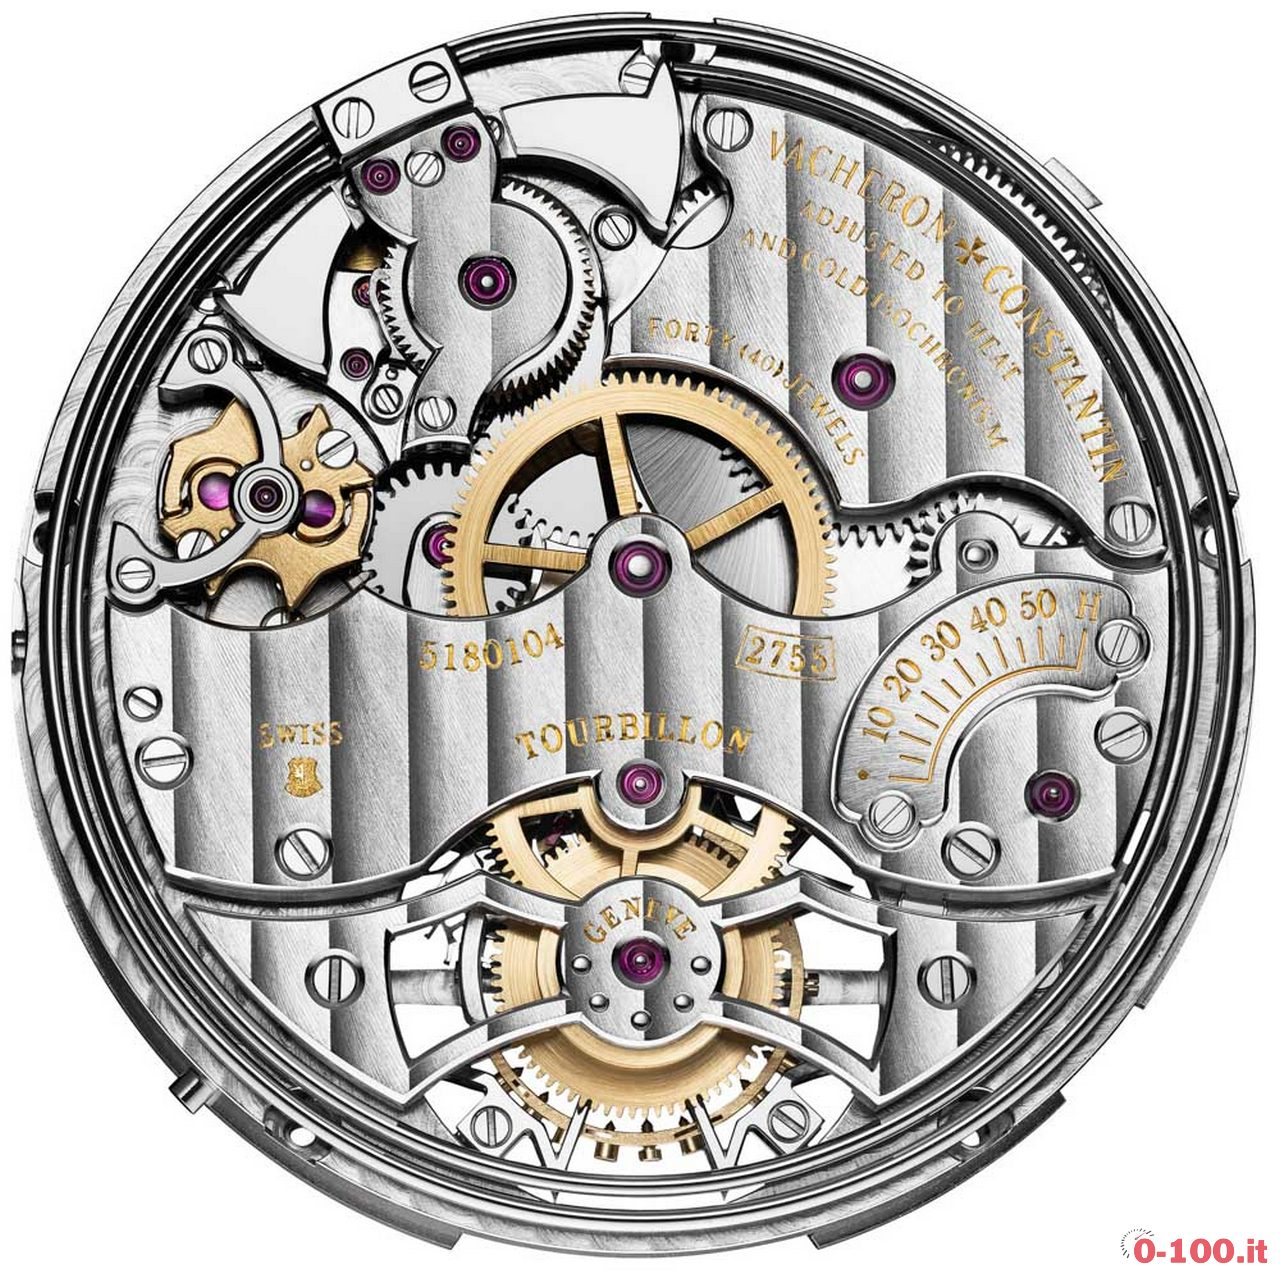 Vacheron-Constantin-Traditionnelle-Minute-Repeater-Tourbillon-aBlogtoWatch-cal2755-v-tr-12